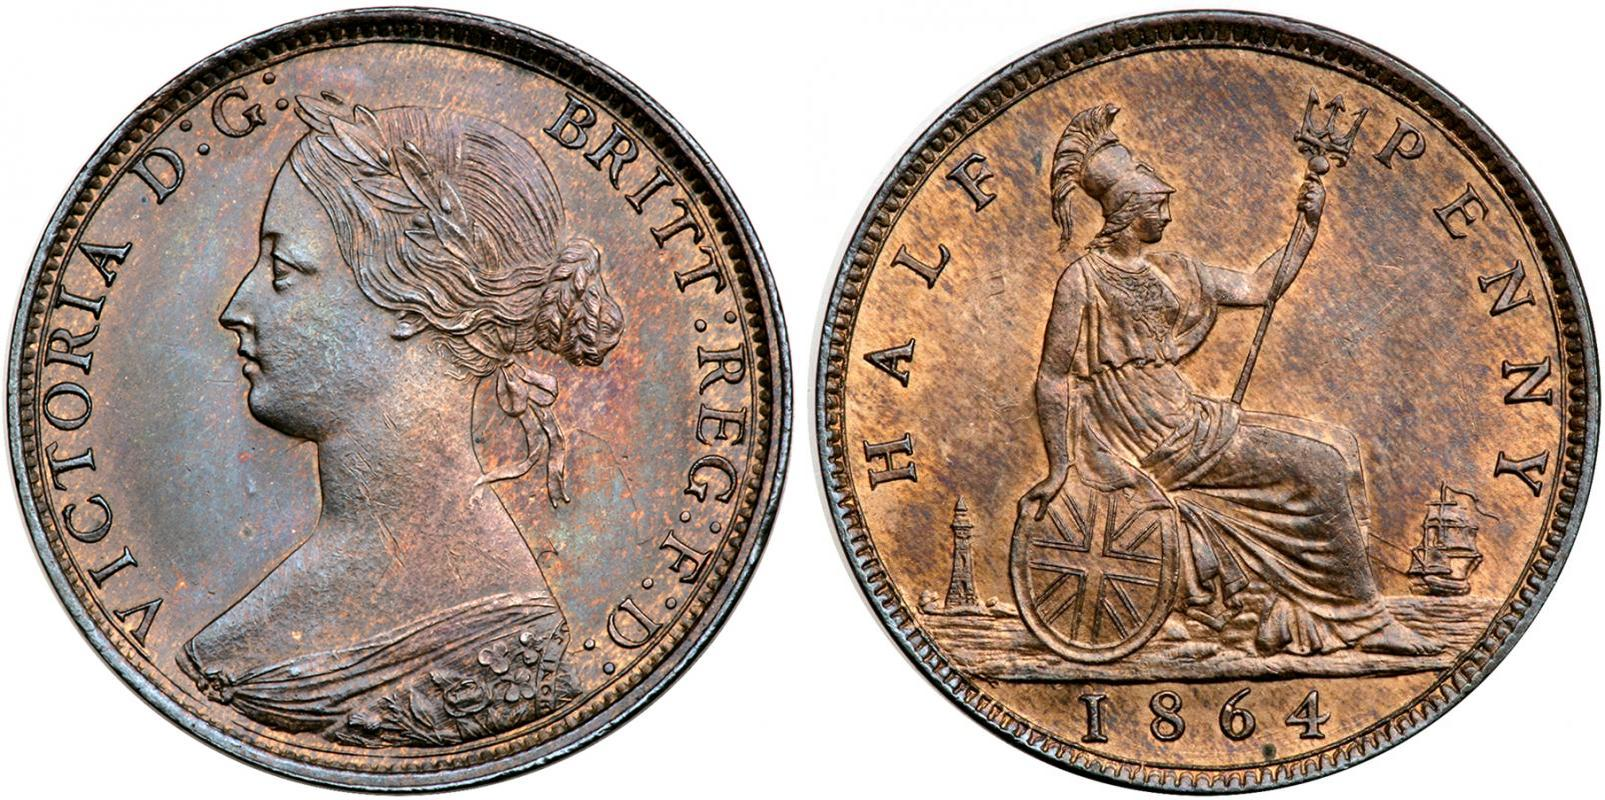 Coin 1 2 penny united kingdom copper 1861 victoria 1819 for One penny homes